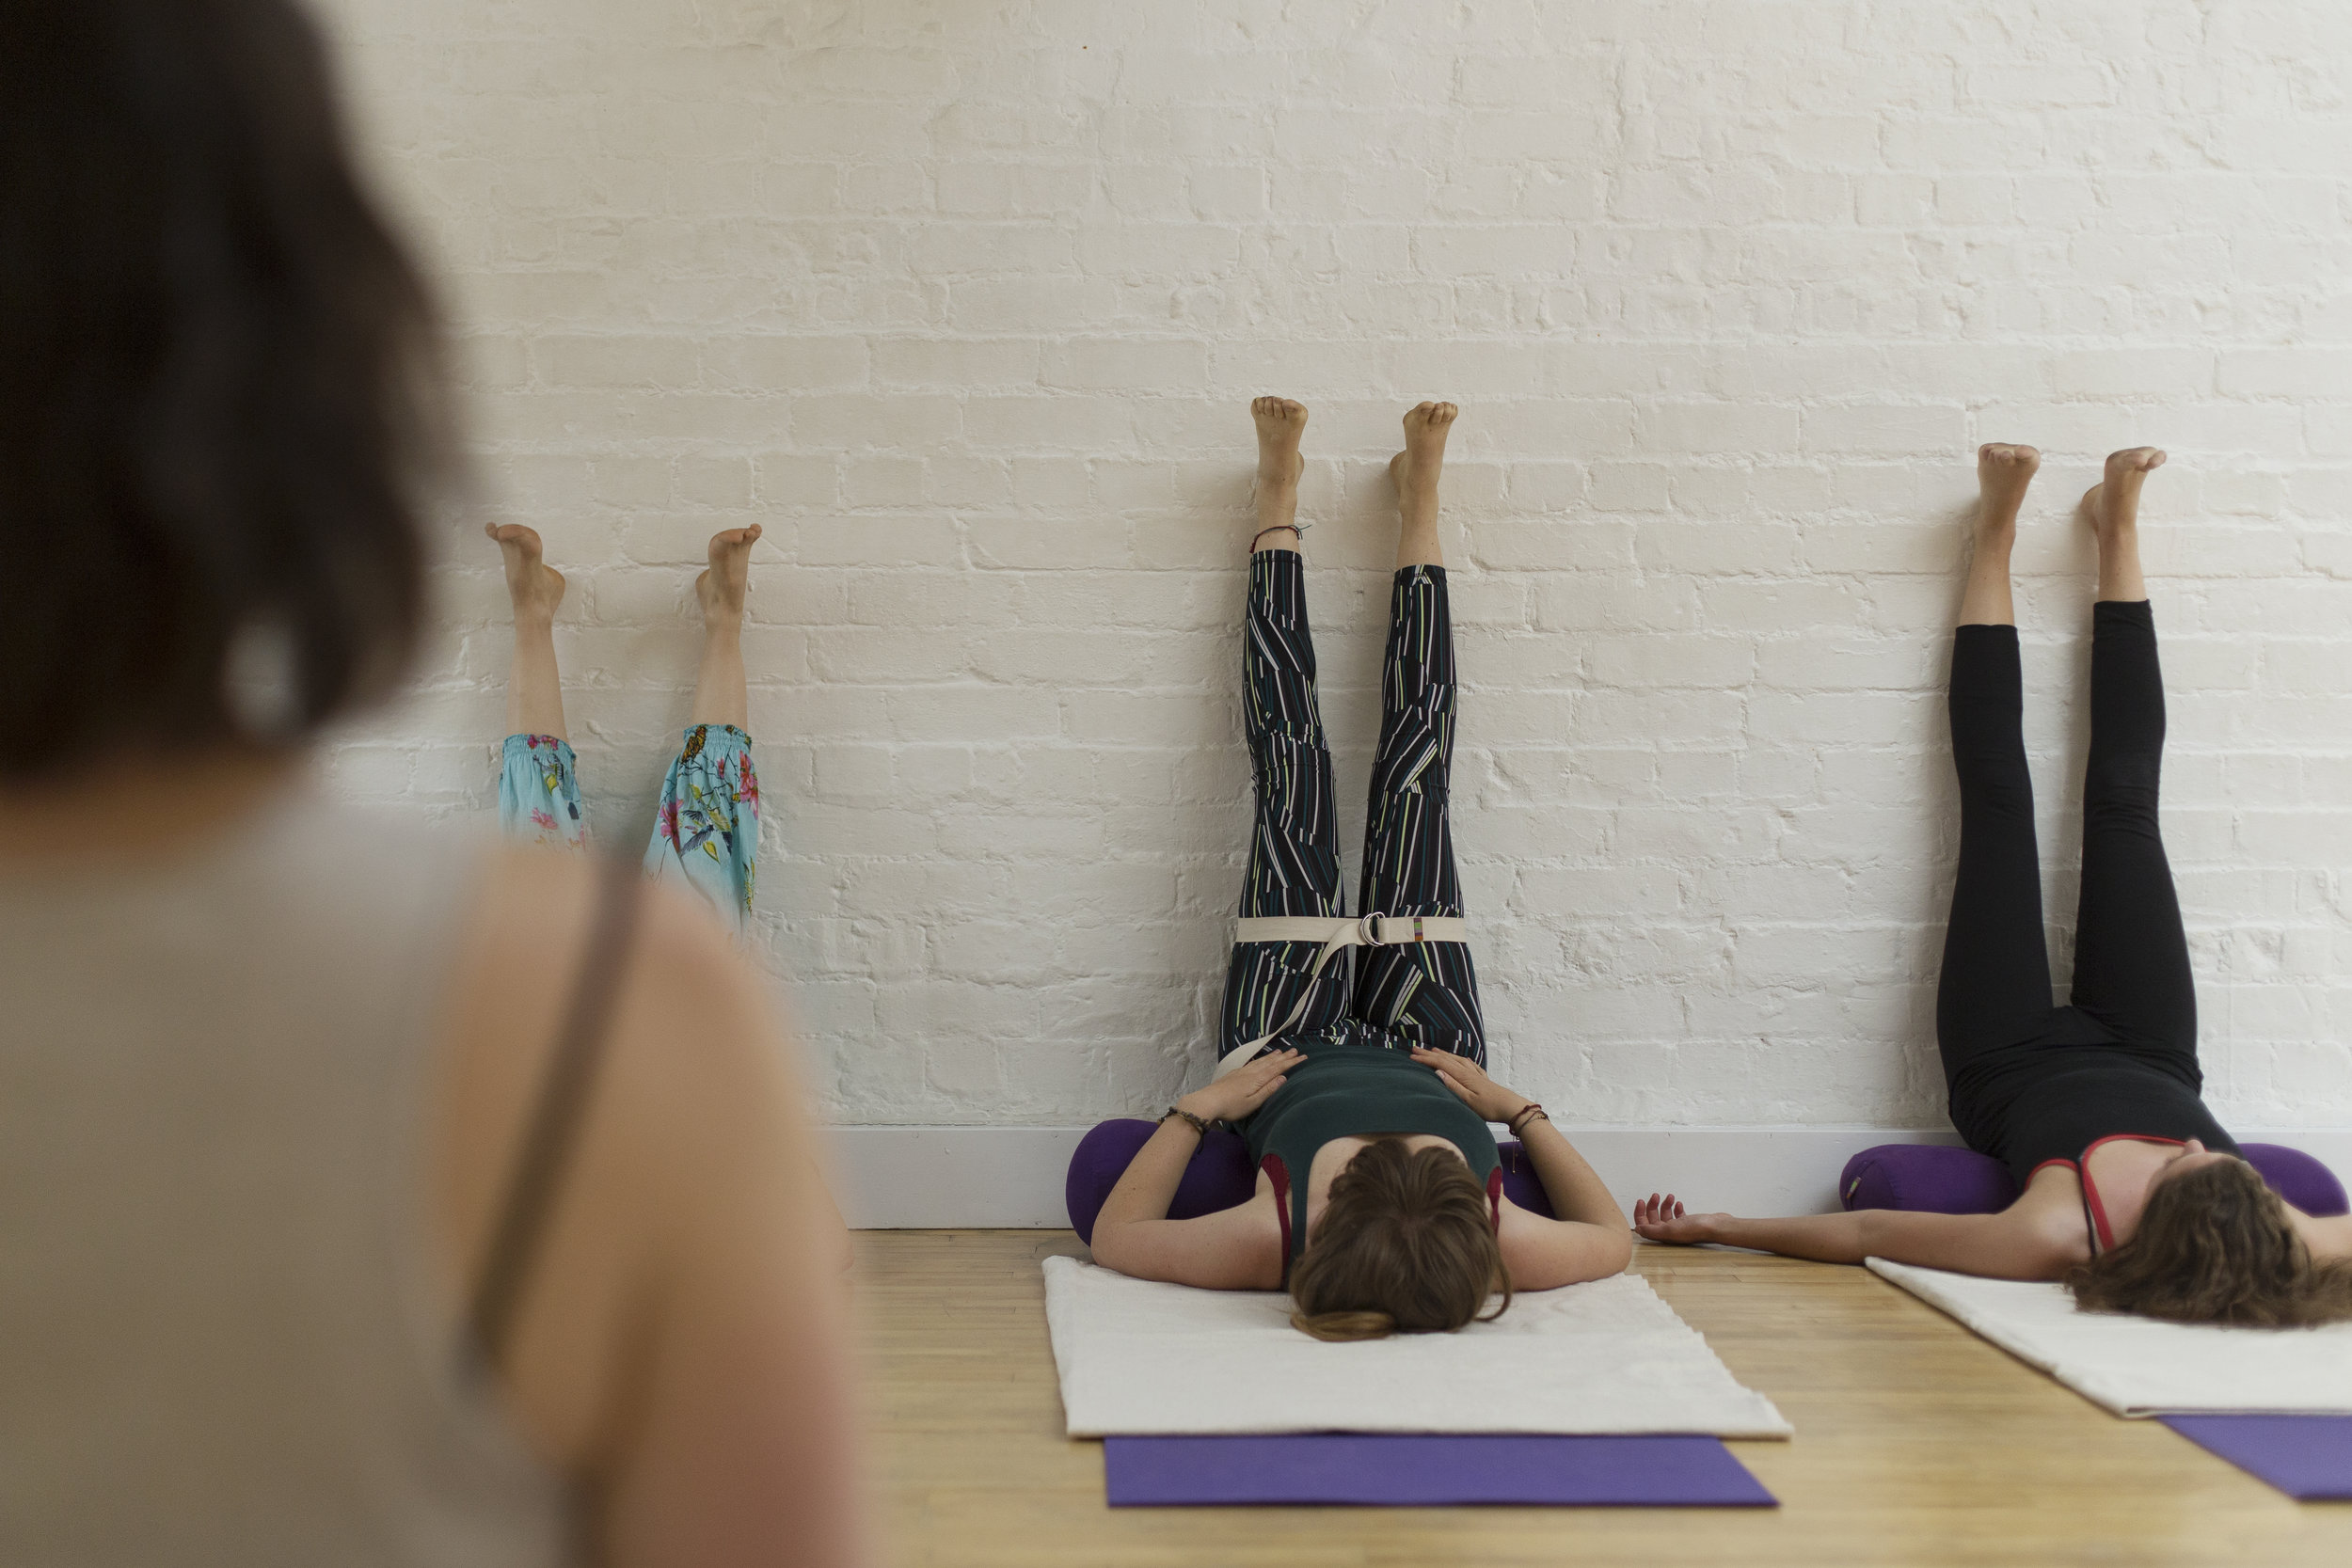 Restorative Yoga - In restorative yoga, we use soothing 'asana' (postures) in which the body is fully supported by props like yoga bolsters and blankets. Many of the poses are performed lying still.This means that rather than having to make an effort, you can sink into the postures to release tension and achieve deep relaxation.